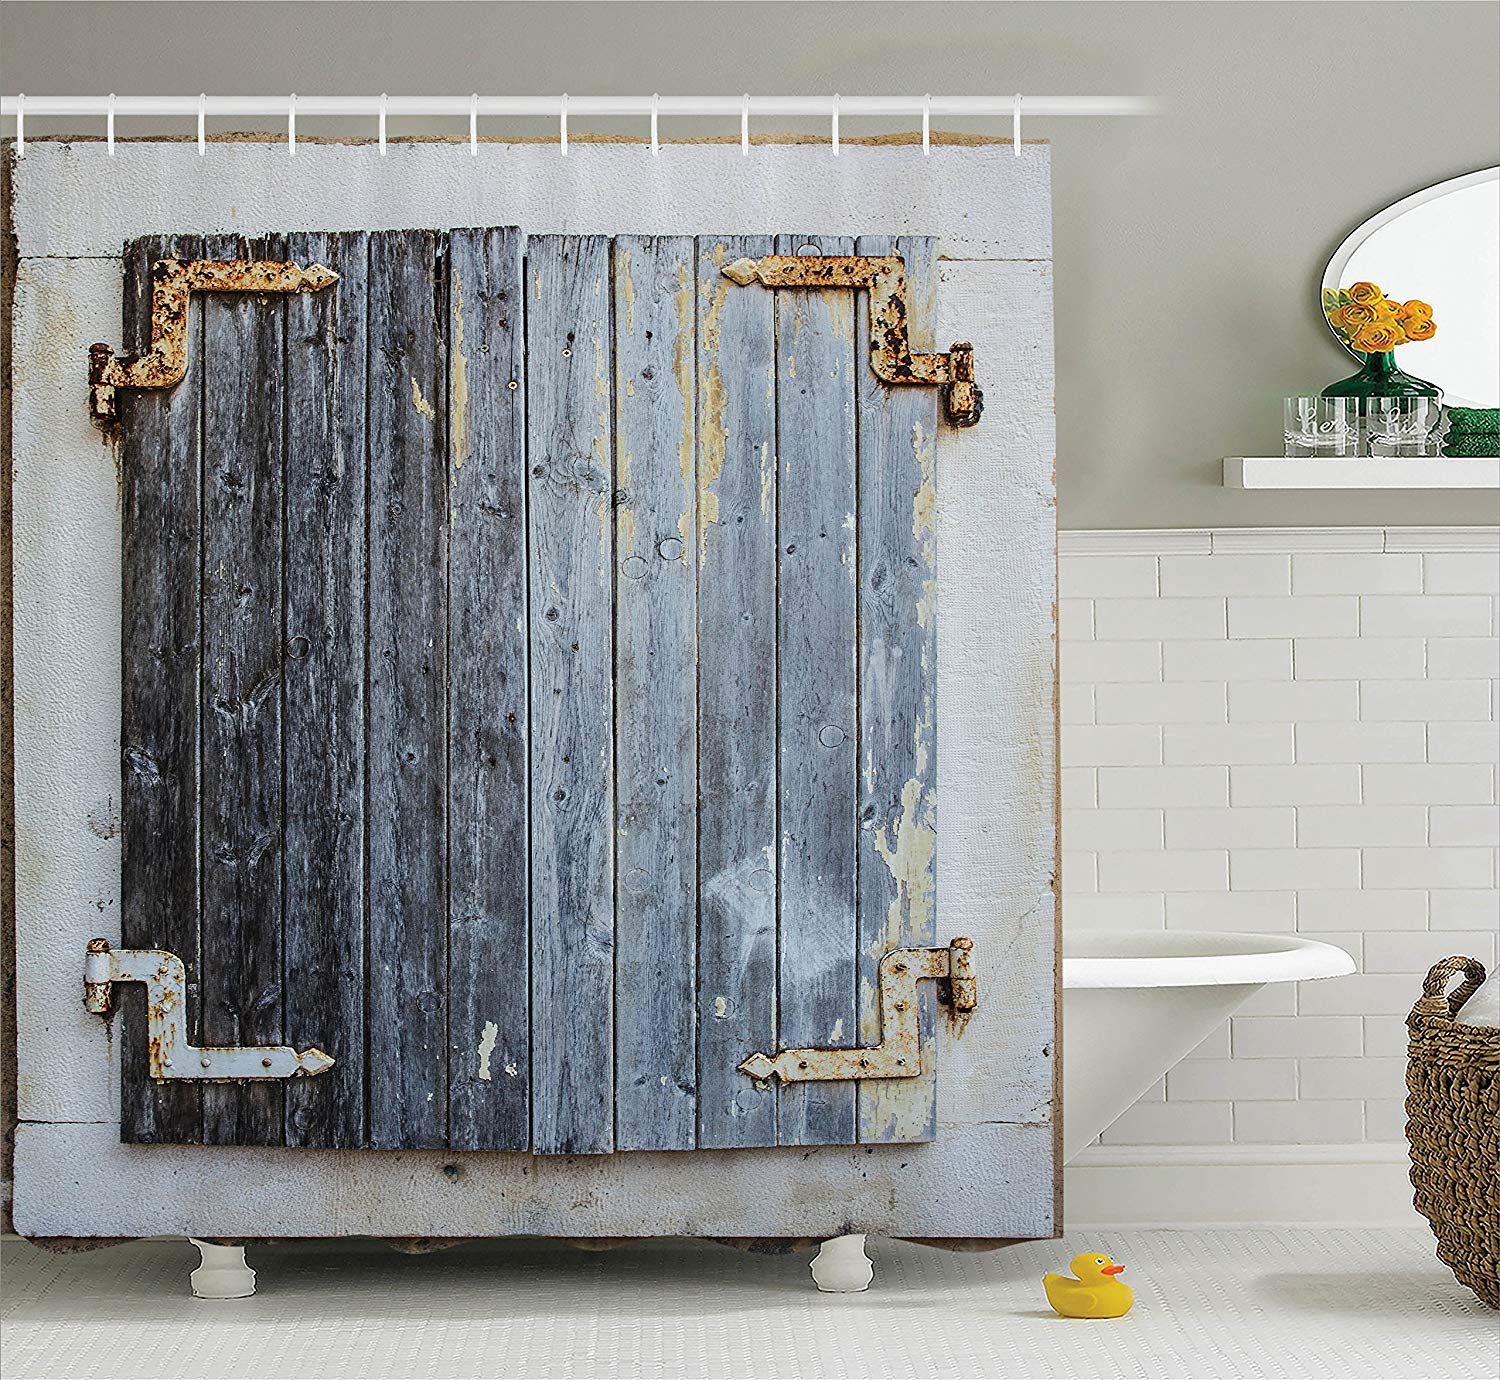 Us 12 8 30 Off Shower Curtain Rustic Wooden Window Shutters With Shabby Paint Rusty Antique Traditional Village Picture Bathroom Accessories In